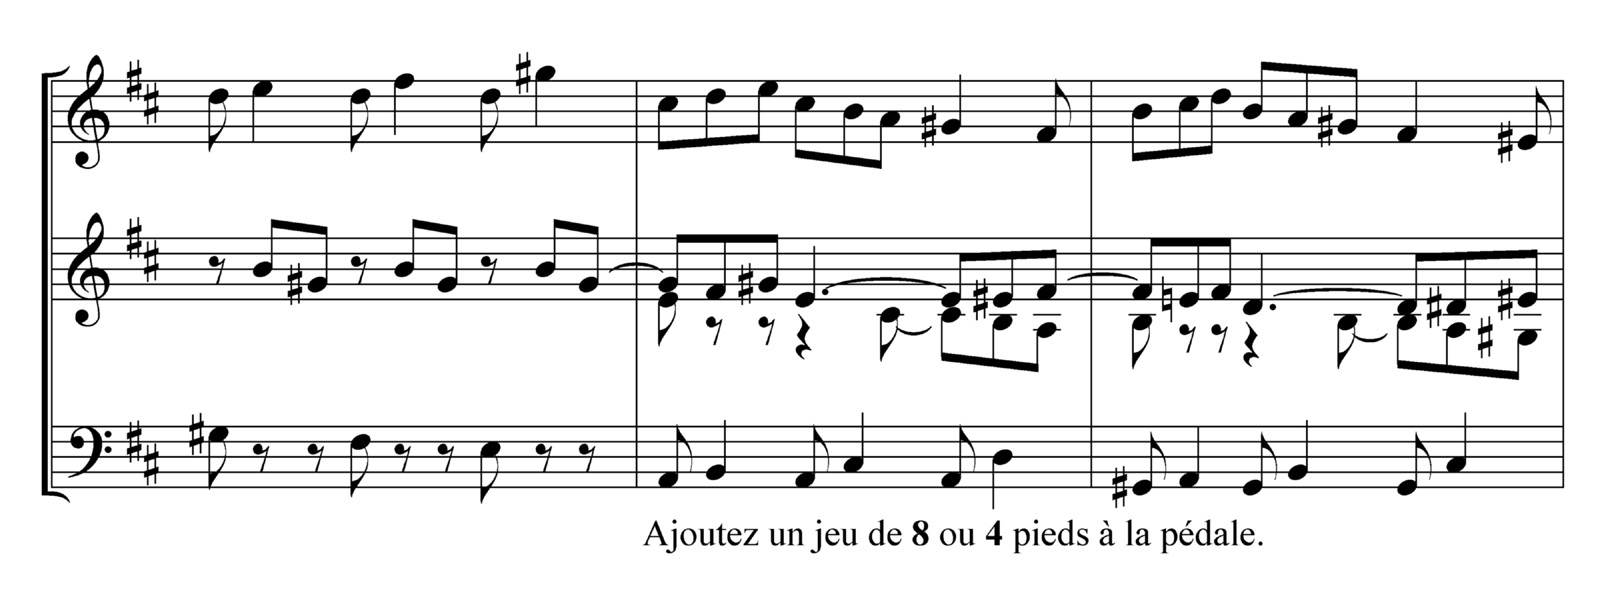 Excerpt of César Franck, Prélude, Fugue & Variation, using Finale and Maestro music font